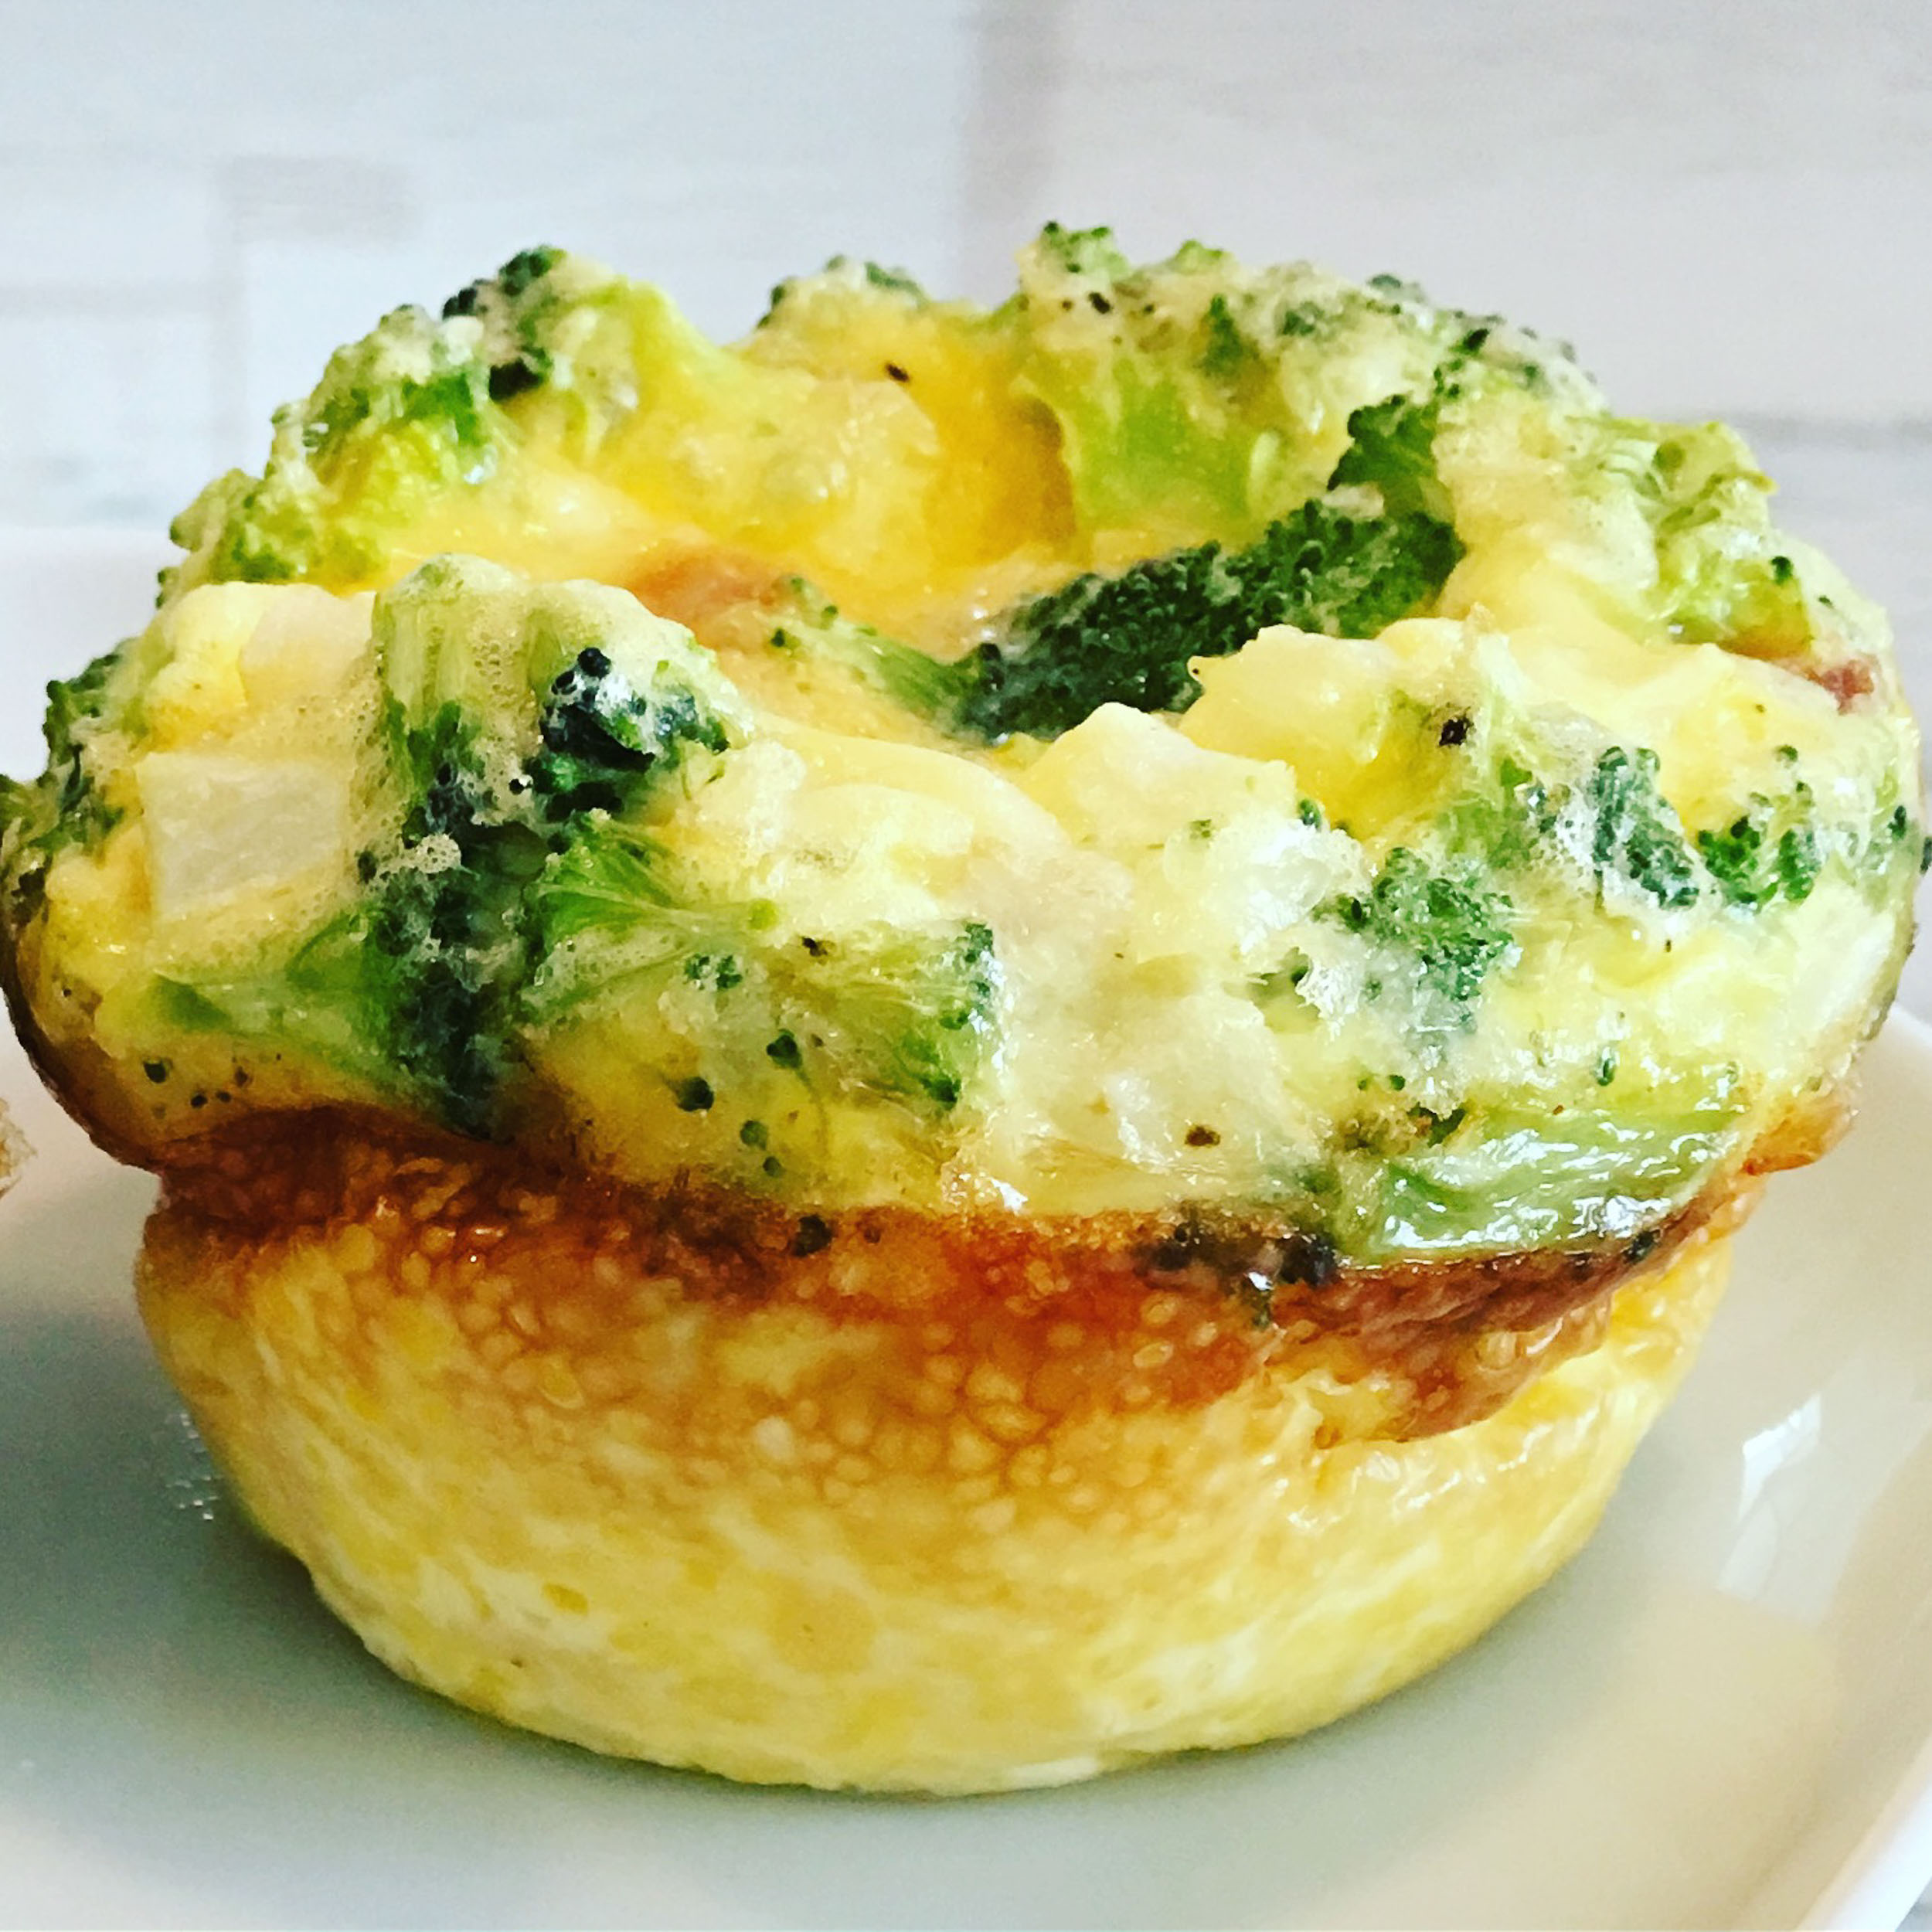 Egg muffin brocoli cheddar.jpg